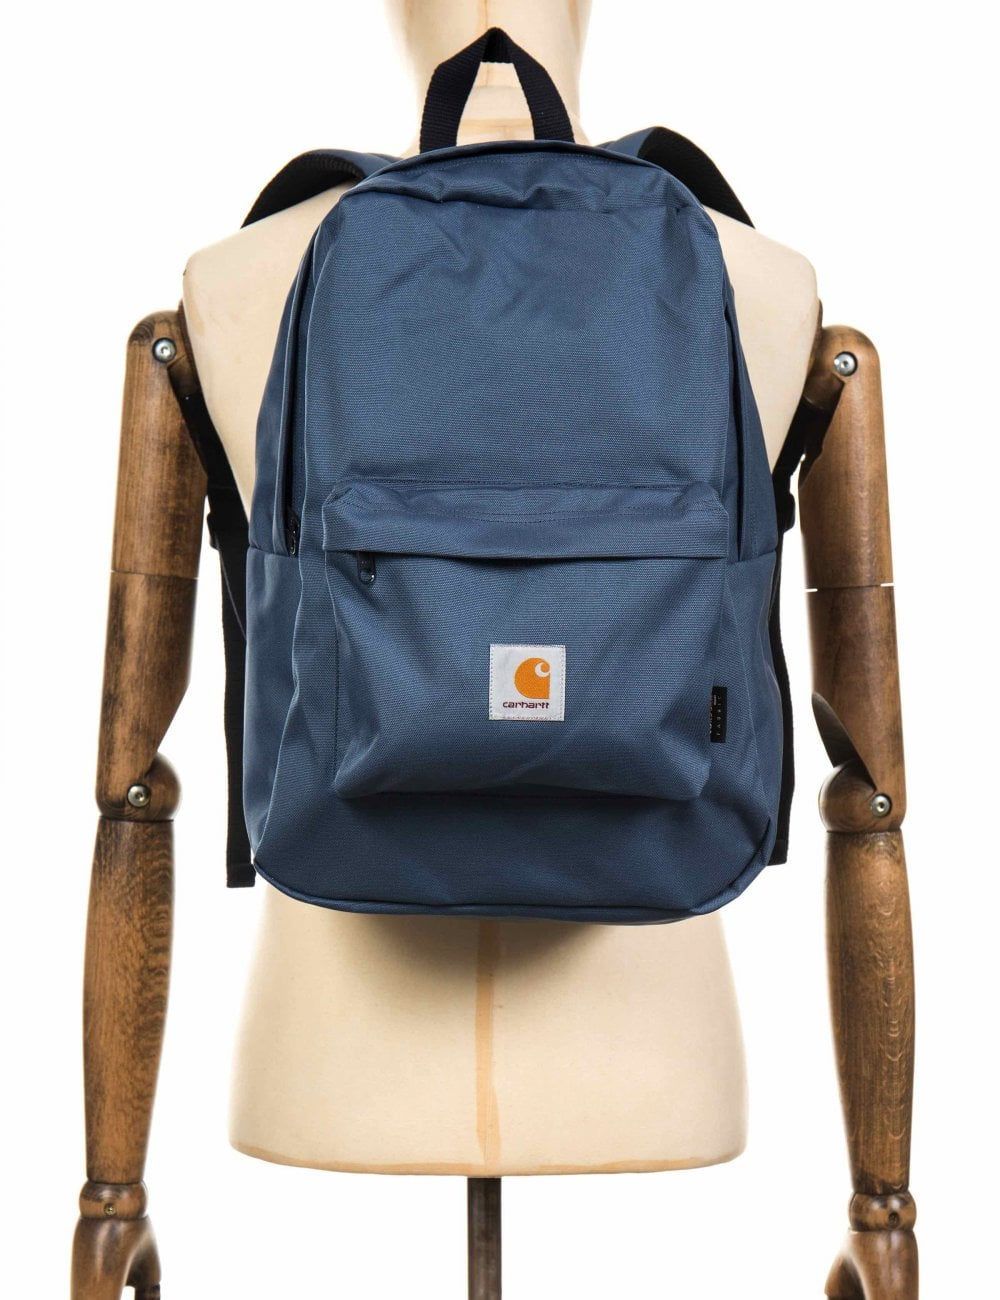 Carhartt WIP Watch Backpack - Stone Blue Dark Navy - Accessories from Fat  Buddha Store UK